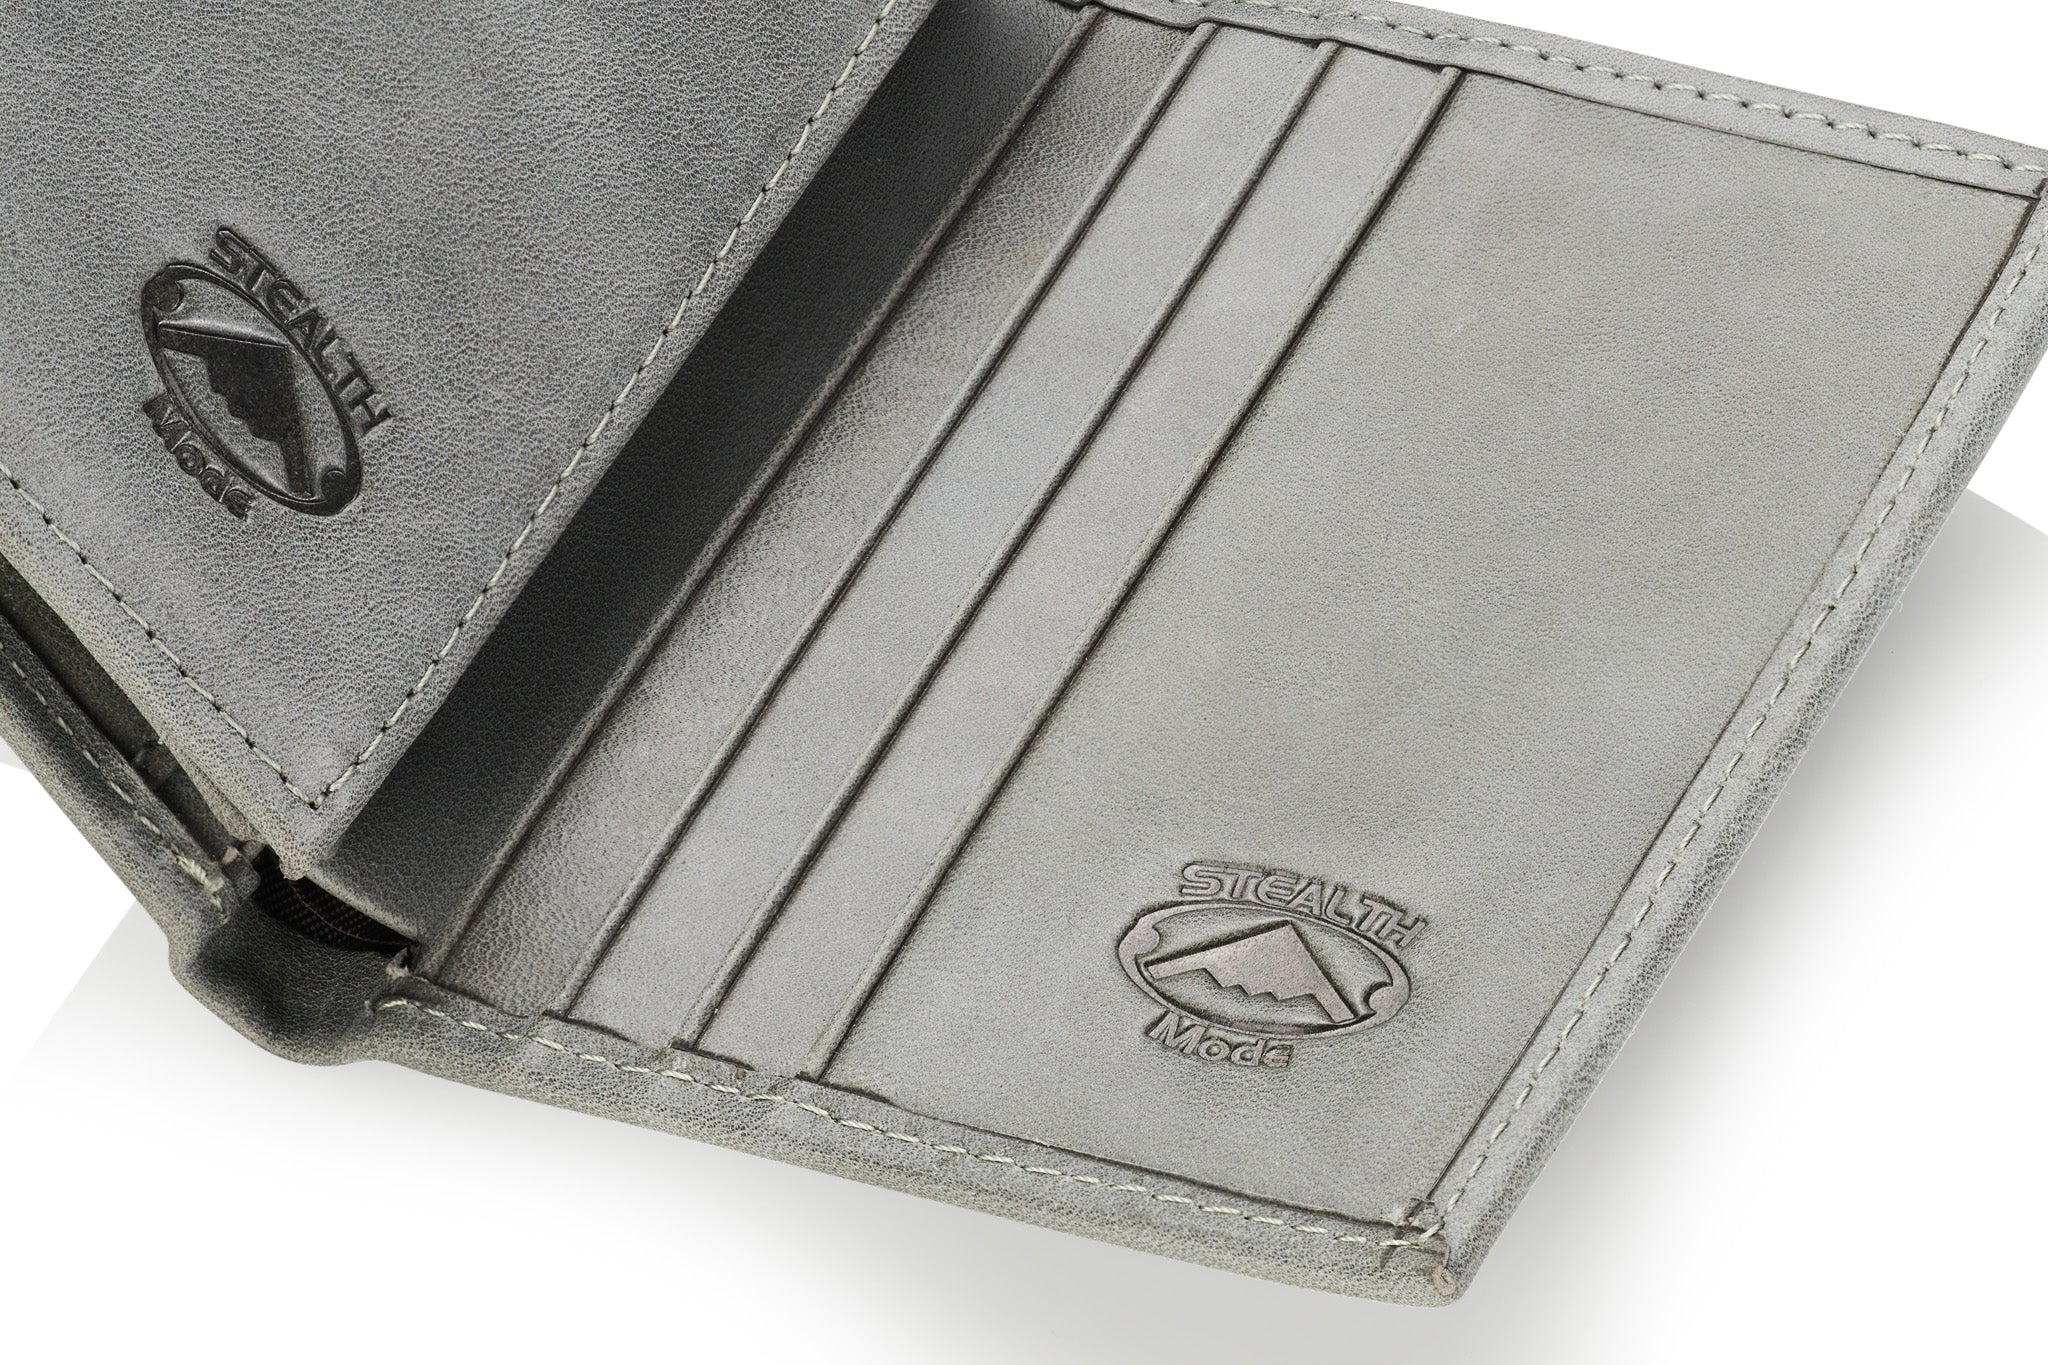 Grey Trifold Leather Wallet With RFID Blocking and ID Window